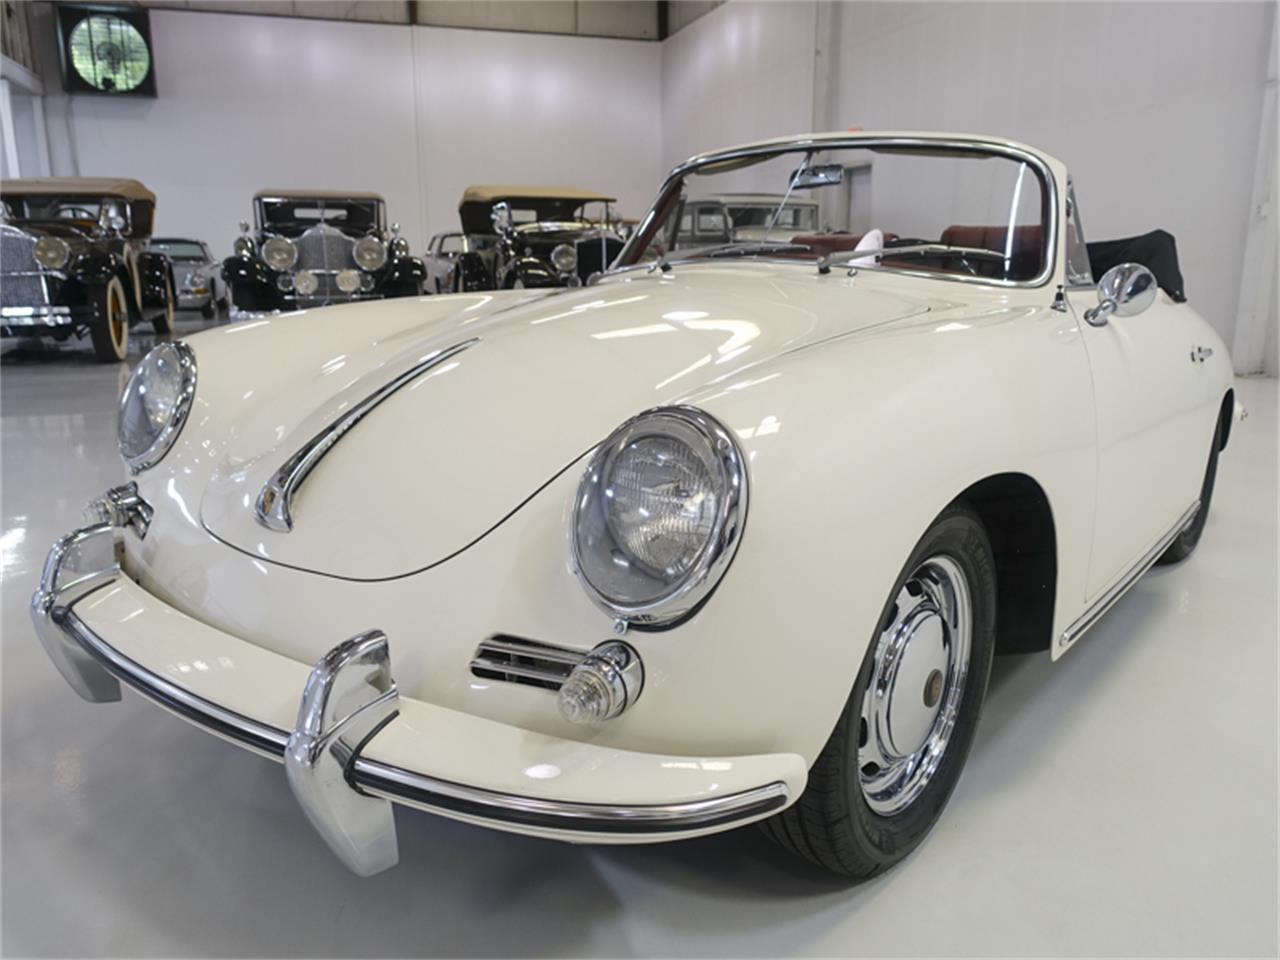 1965 Porsche 356C for sale in St. Louis, MO – photo 2